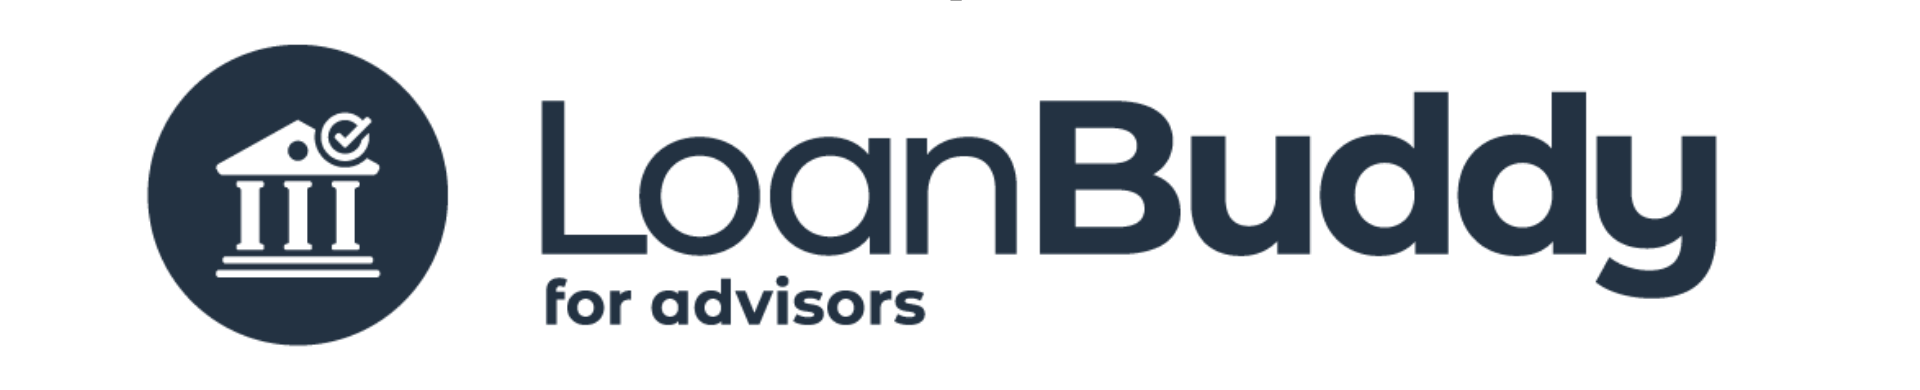 loan buddy exhibitor logo for garrett planning network 2020 virtual conference